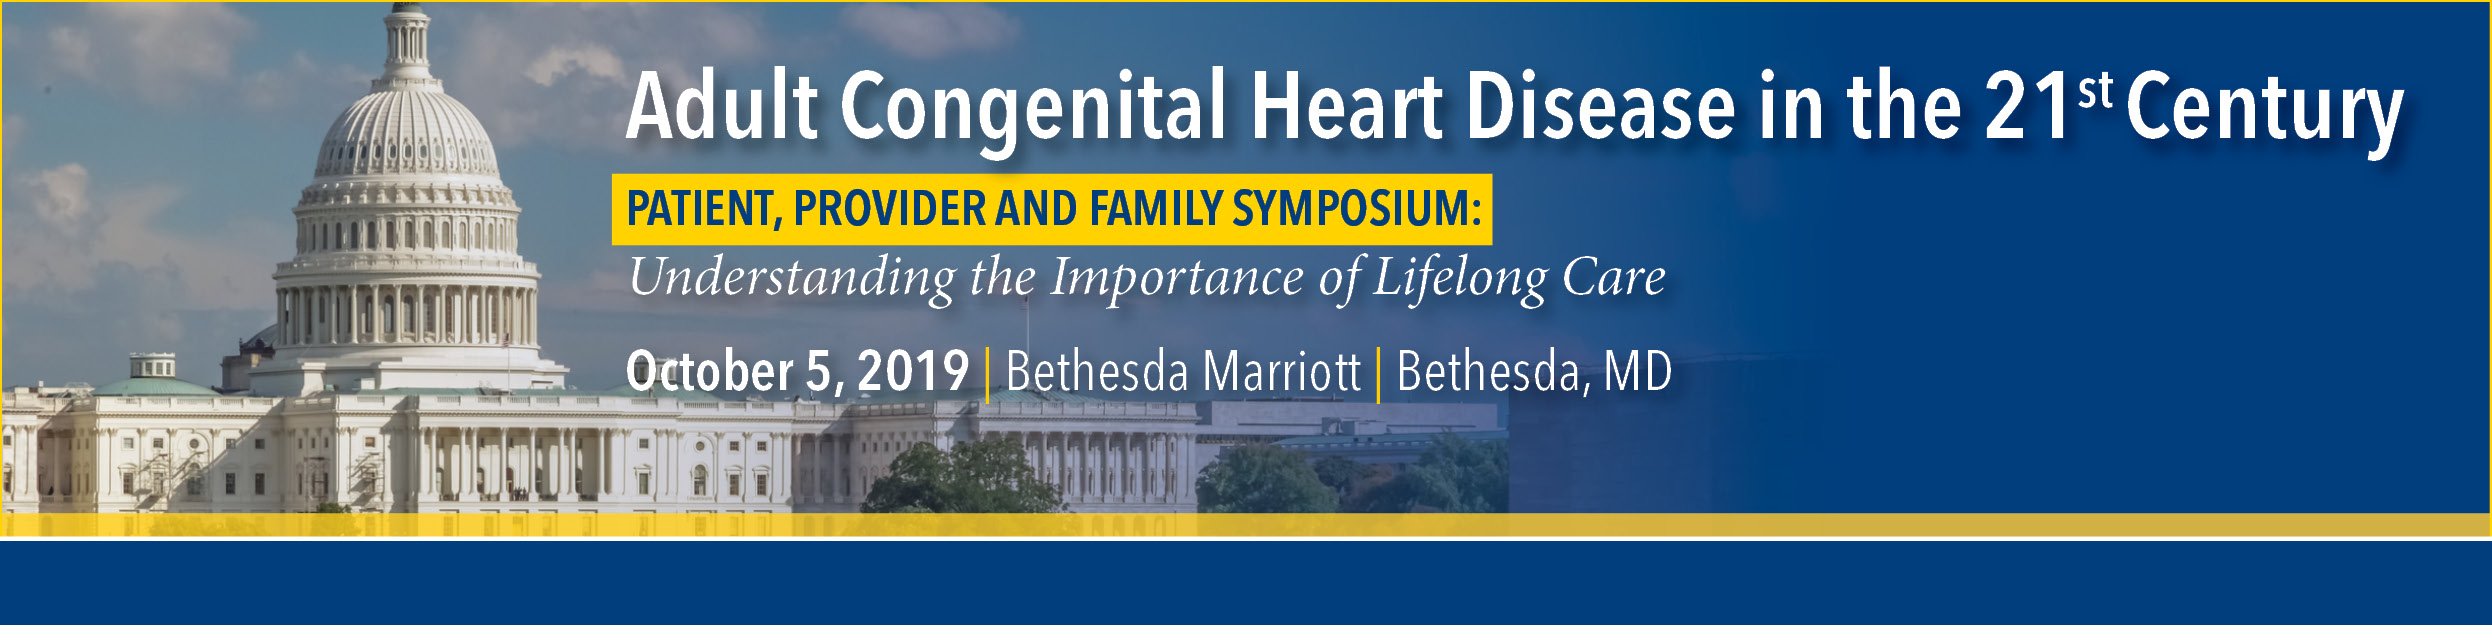 Adult Congenital Heart Disease (ACHD) Patient and Family Session 2019 Banner